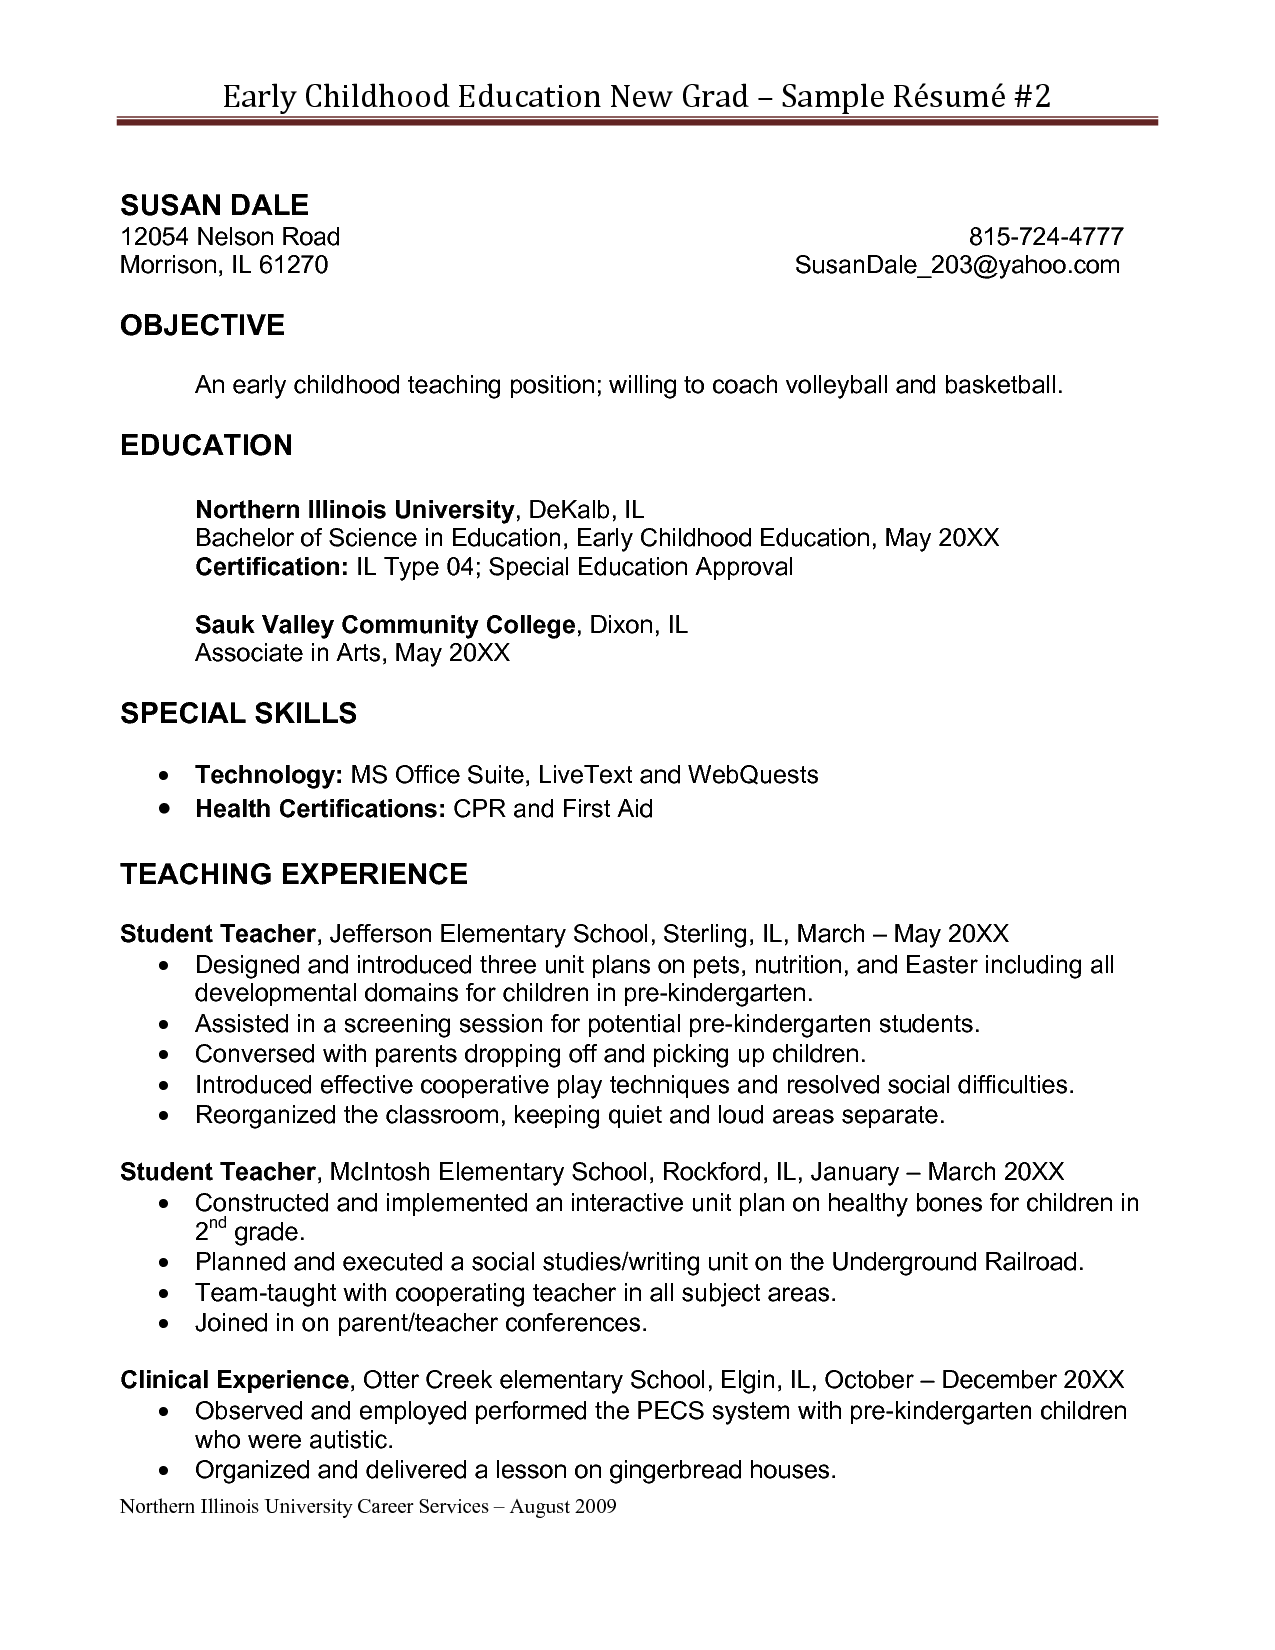 Education On Resume Examples Early Childhood Education Resume Objective  Shebs  Pinterest